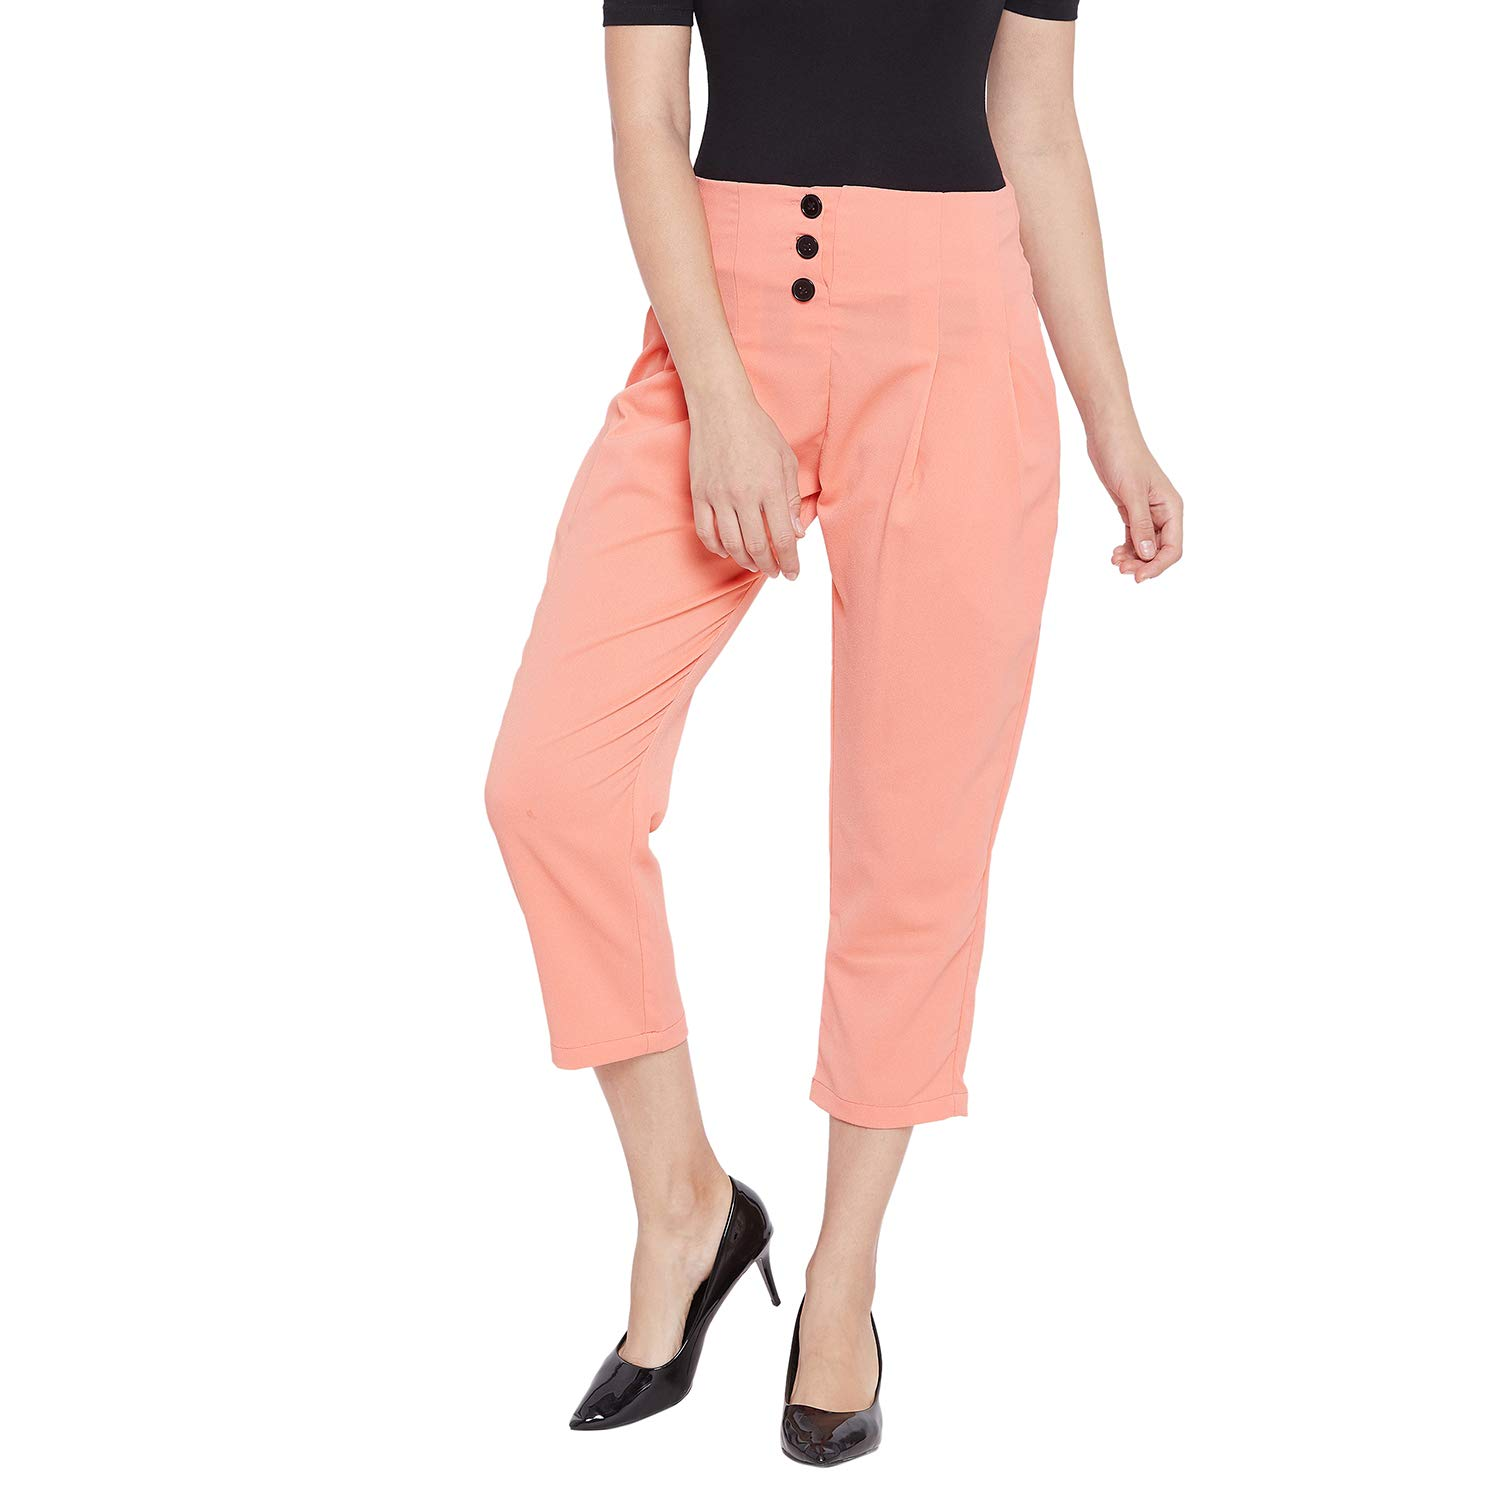 Buy The Silhouette Store Women Slim Fit Culotte Pants At Amazon In Depend ® silhouette ® briefs are an essential part of your wardrobe. amazon in